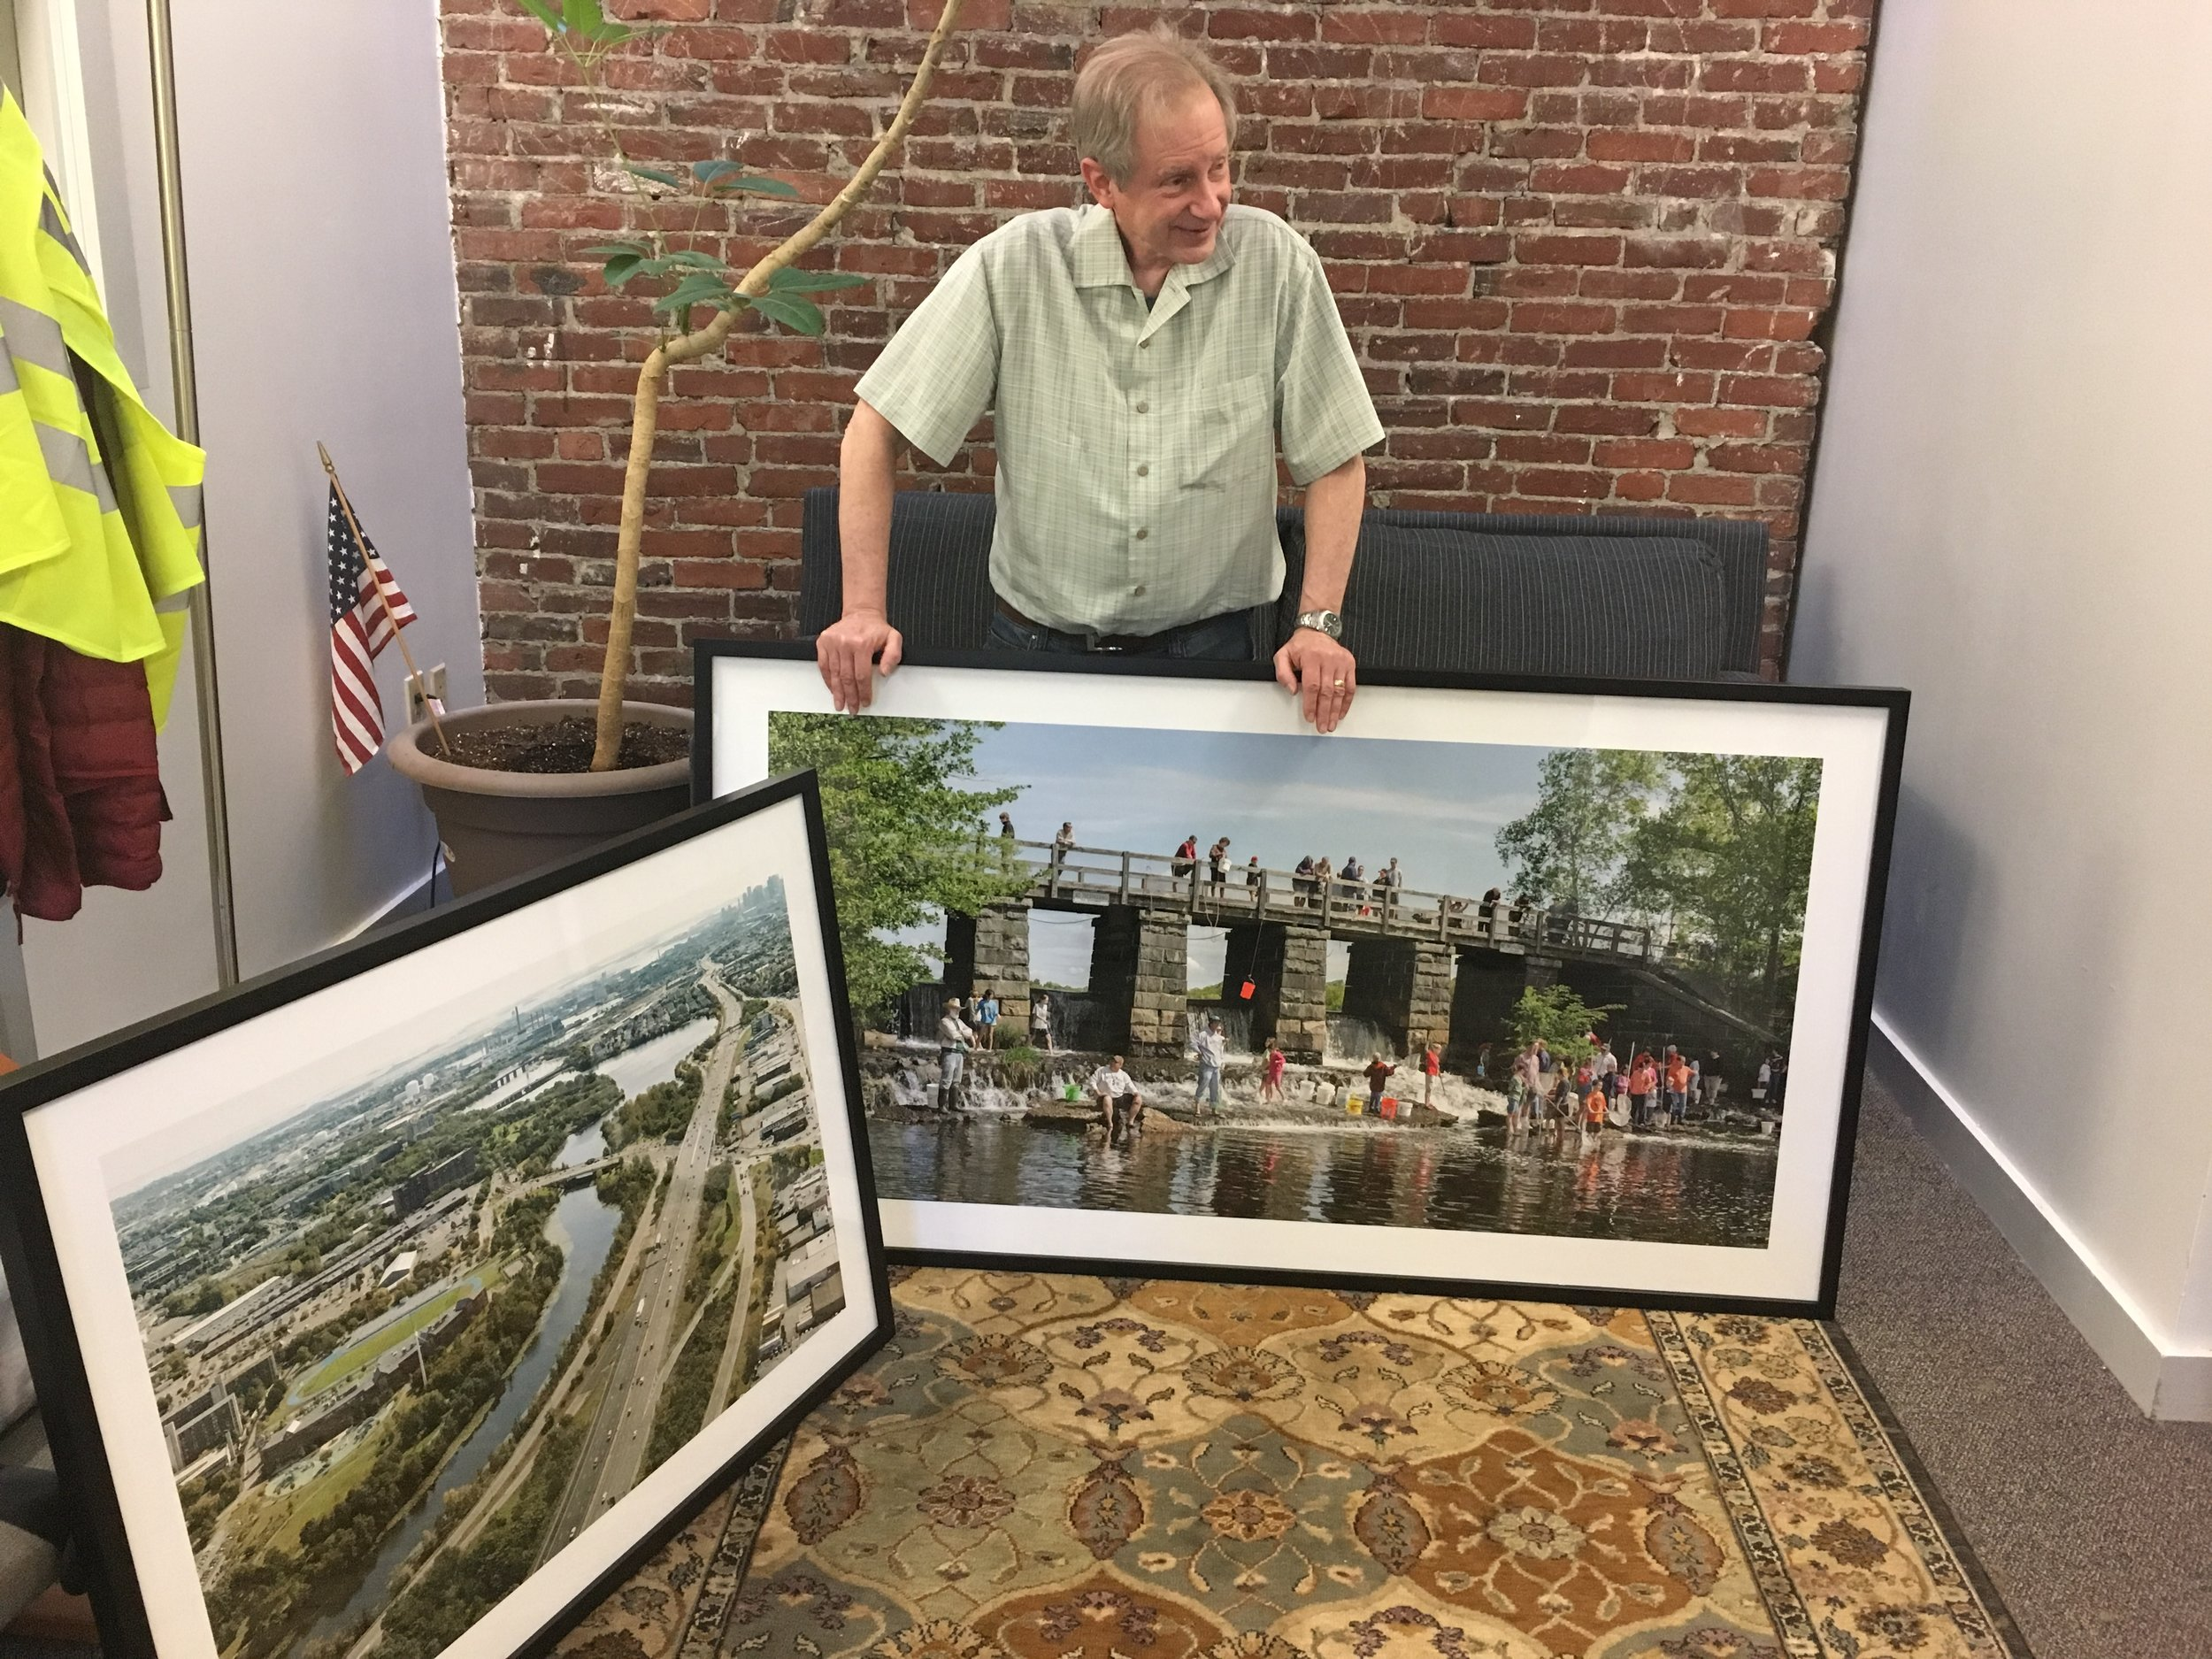 David Mussina, local volunteer and photographer, donated photos to liven up the MyRWA office. Stop by to see this one capturing the bucket brigade!